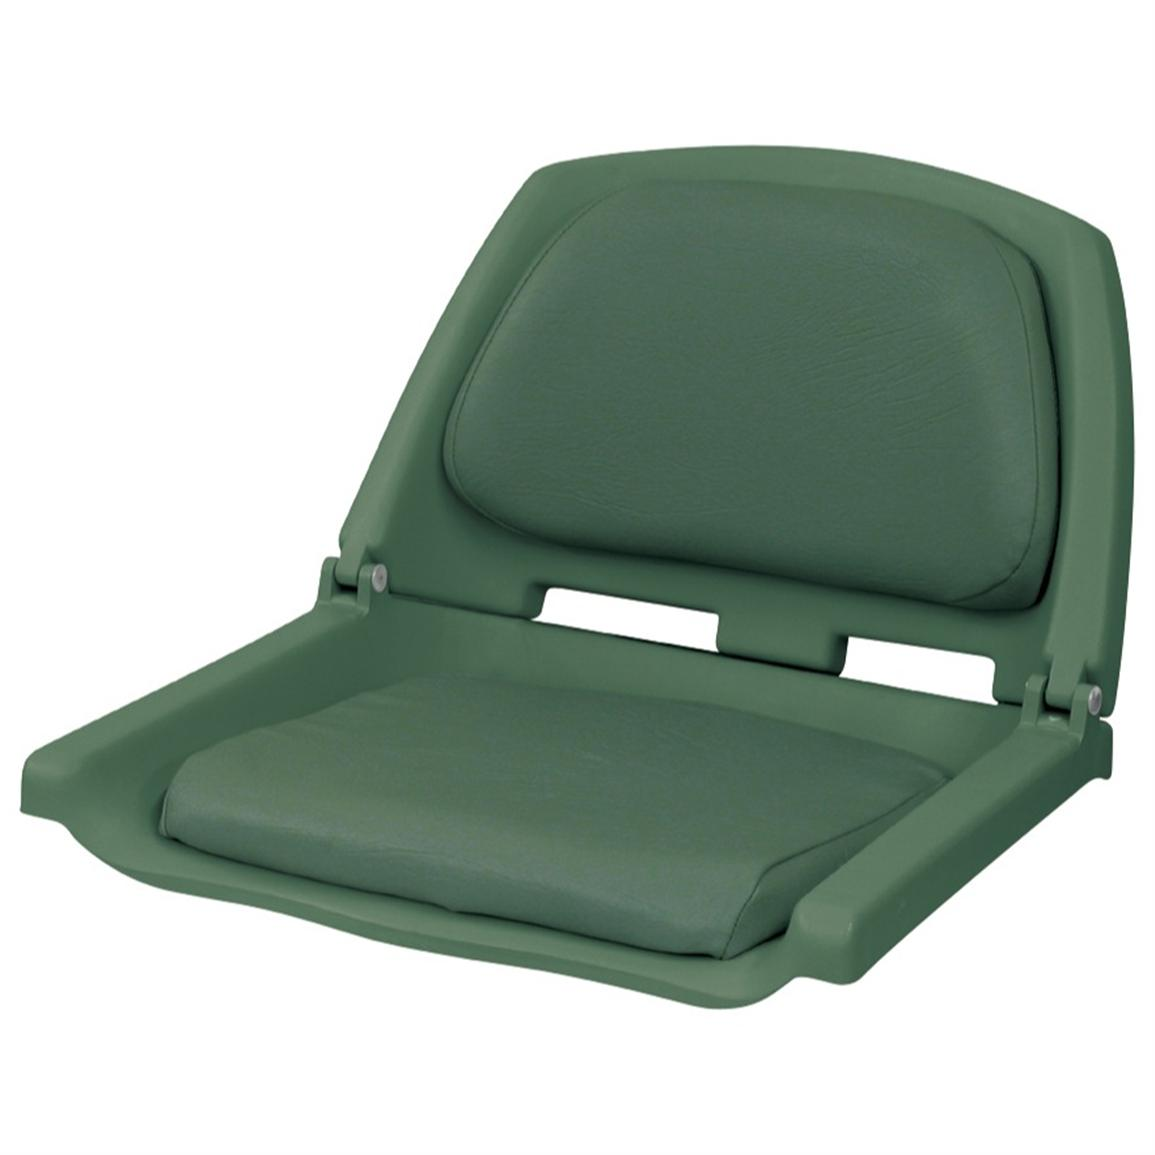 Wise® Folding Fishing Boat Seat, Green / Green